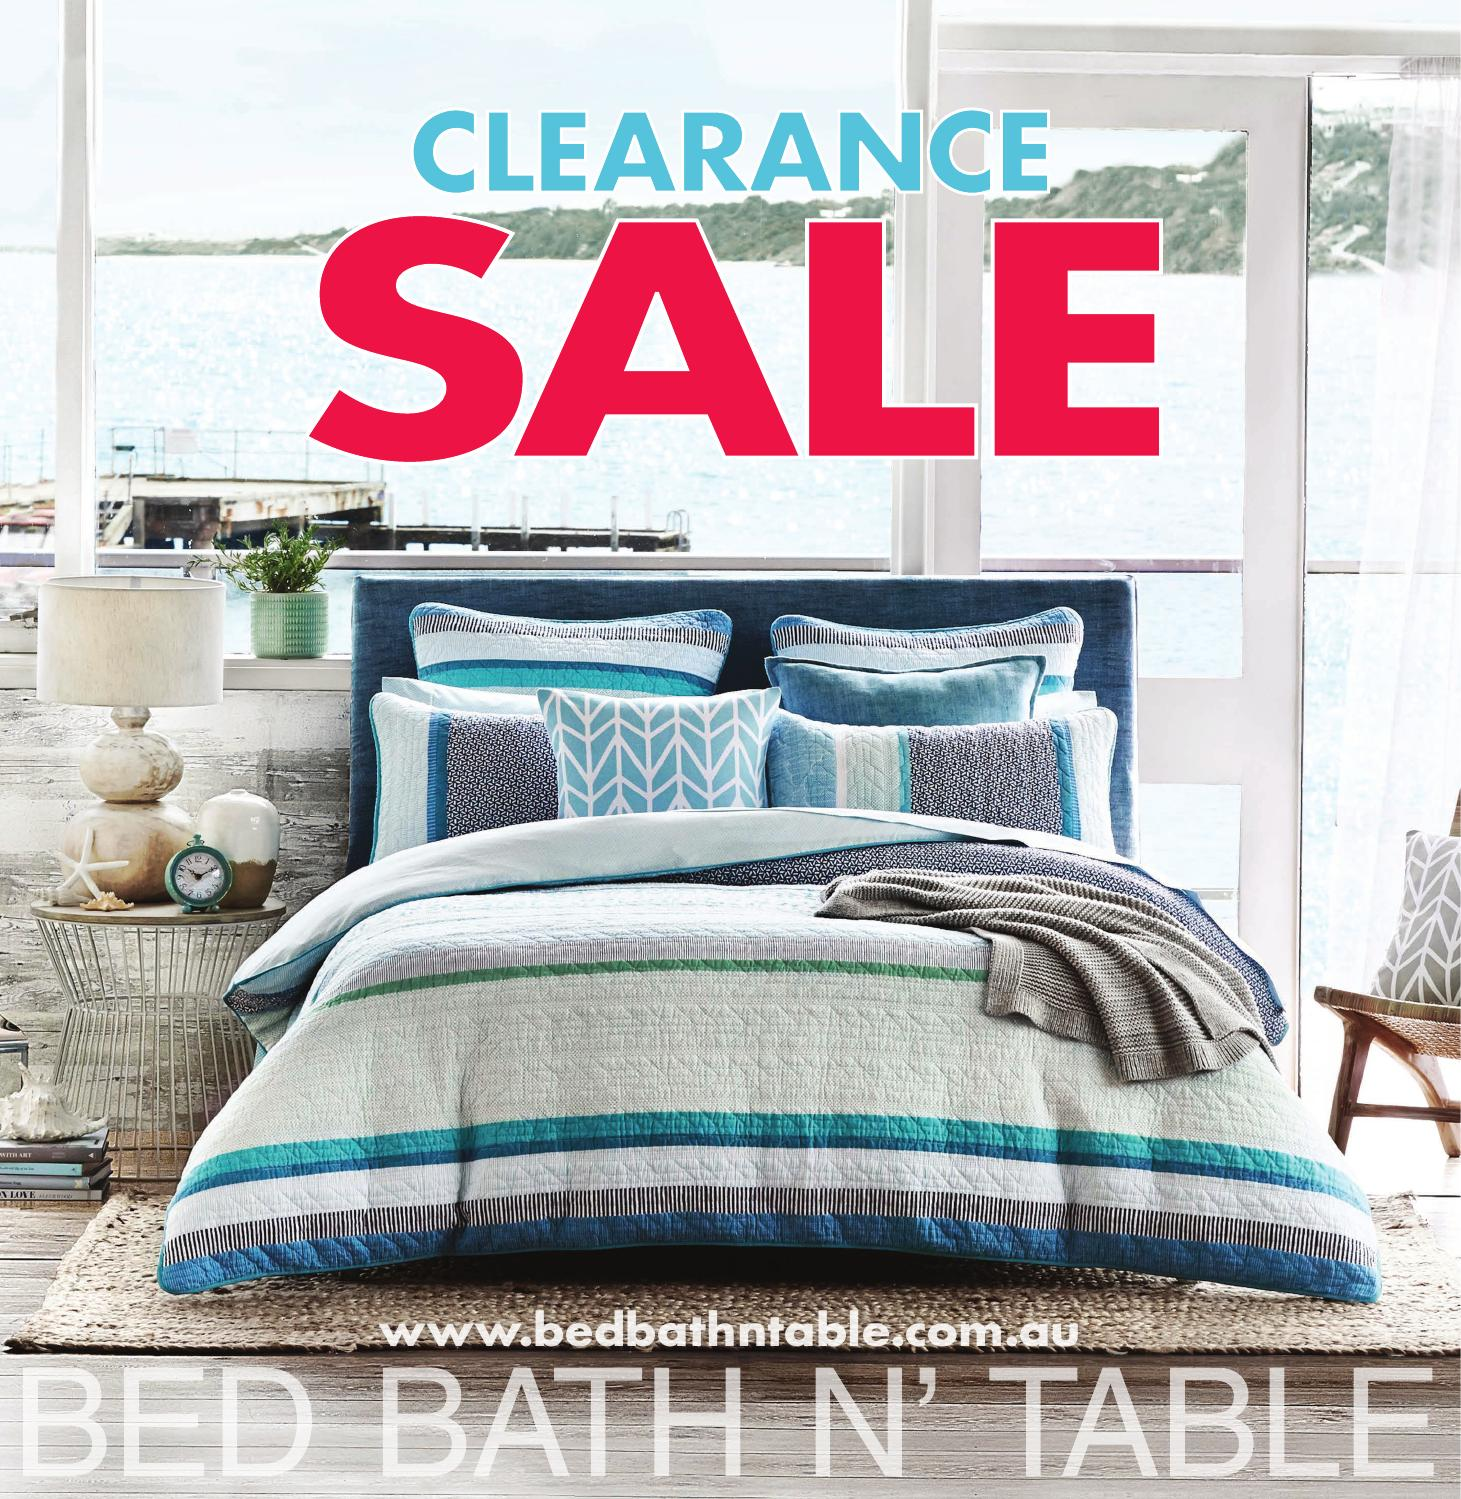 bed bath and table catalogue